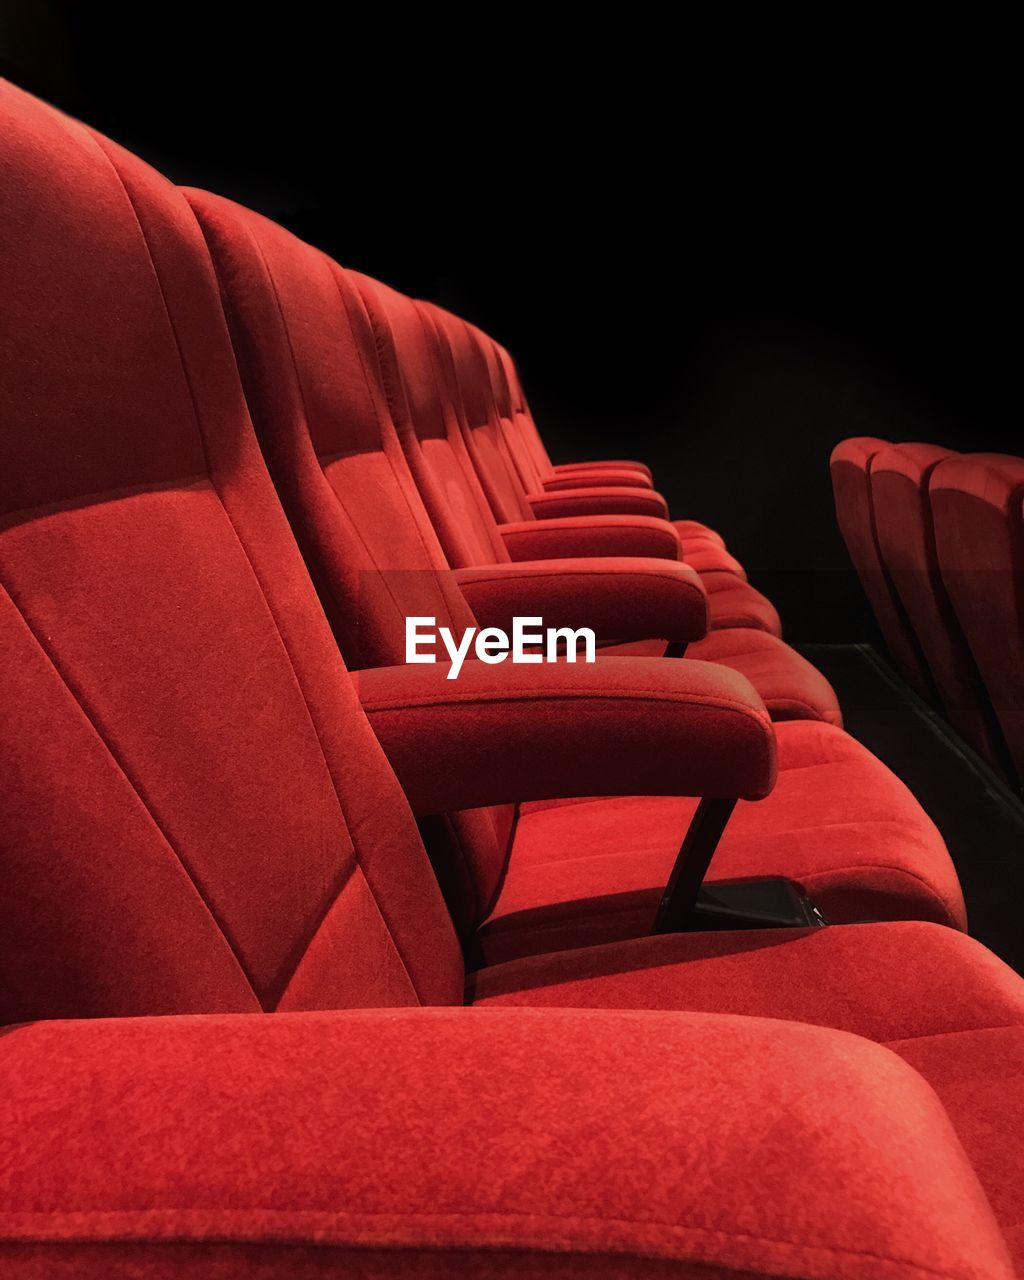 red, seat, in a row, chair, movie theater, empty, arts culture and entertainment, absence, indoors, no people, film industry, auditorium, relaxation, repetition, comfortable, order, theater, dark, black background, stage theater, stage